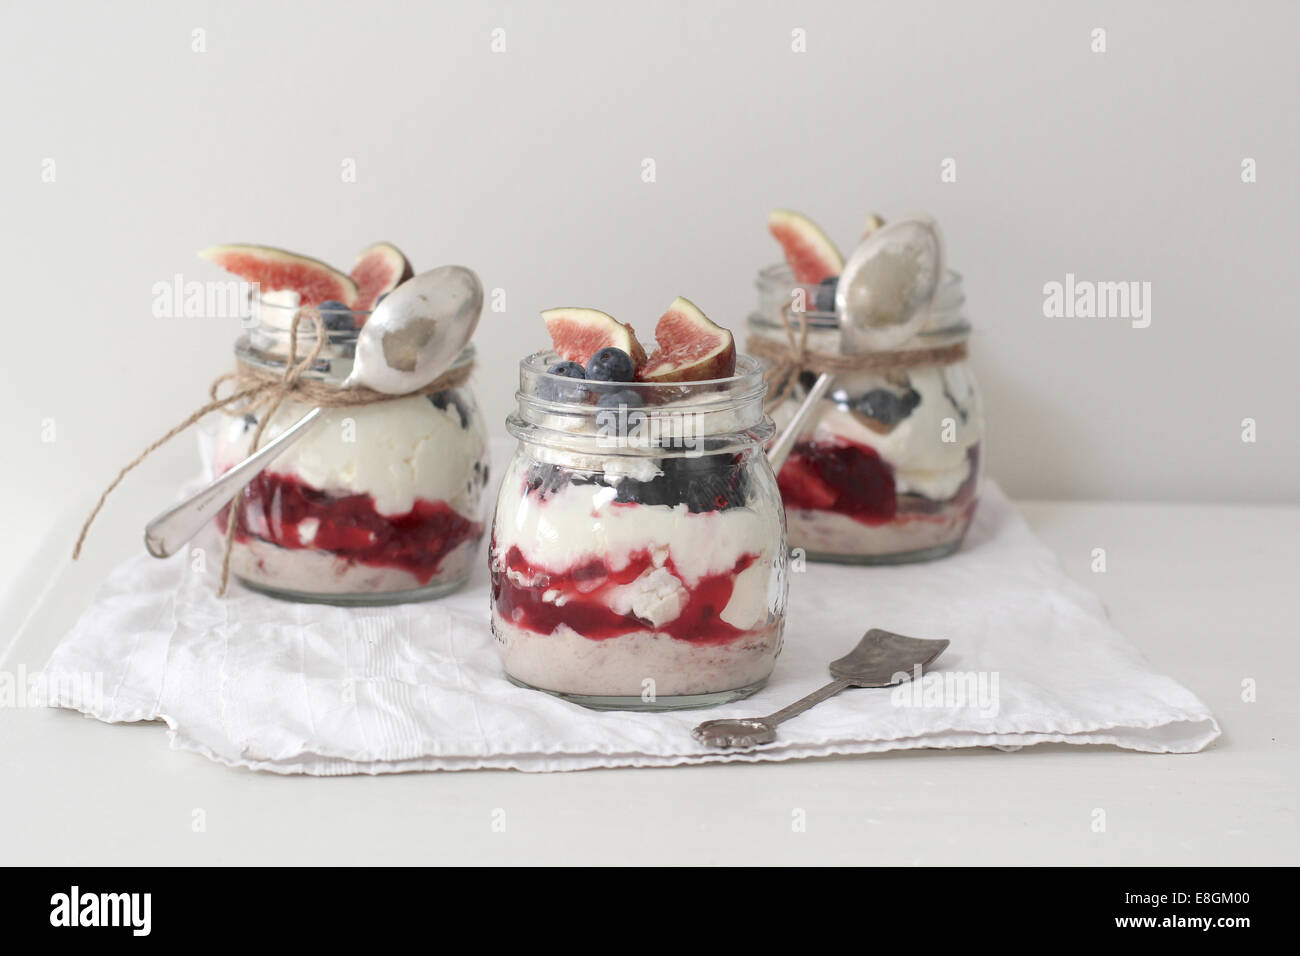 Eton mess desserts in jars topped with fresh figs and blueberries - Stock Image